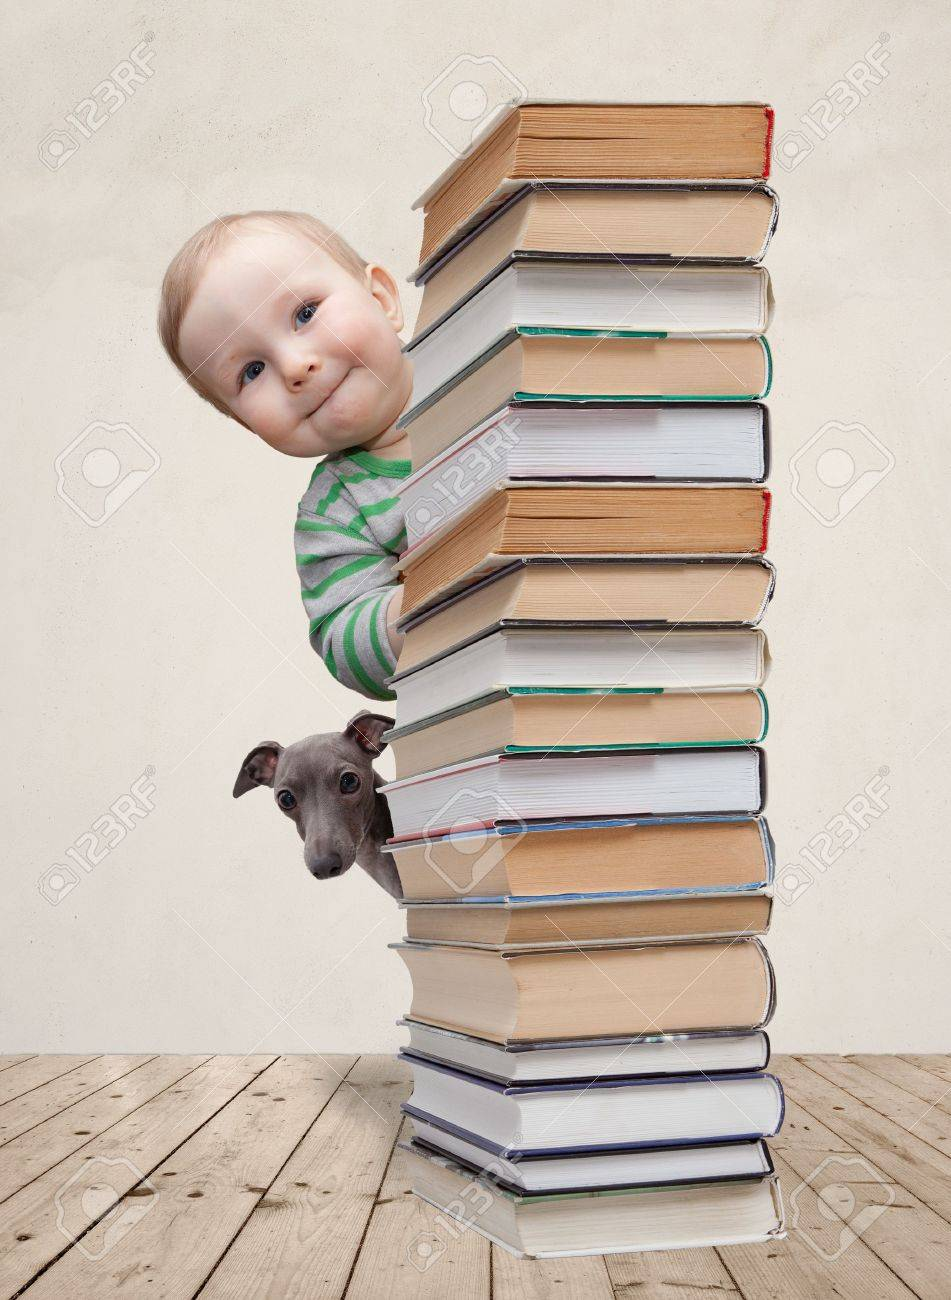 Baby and dog looking behind the column of books stock photo 20960845